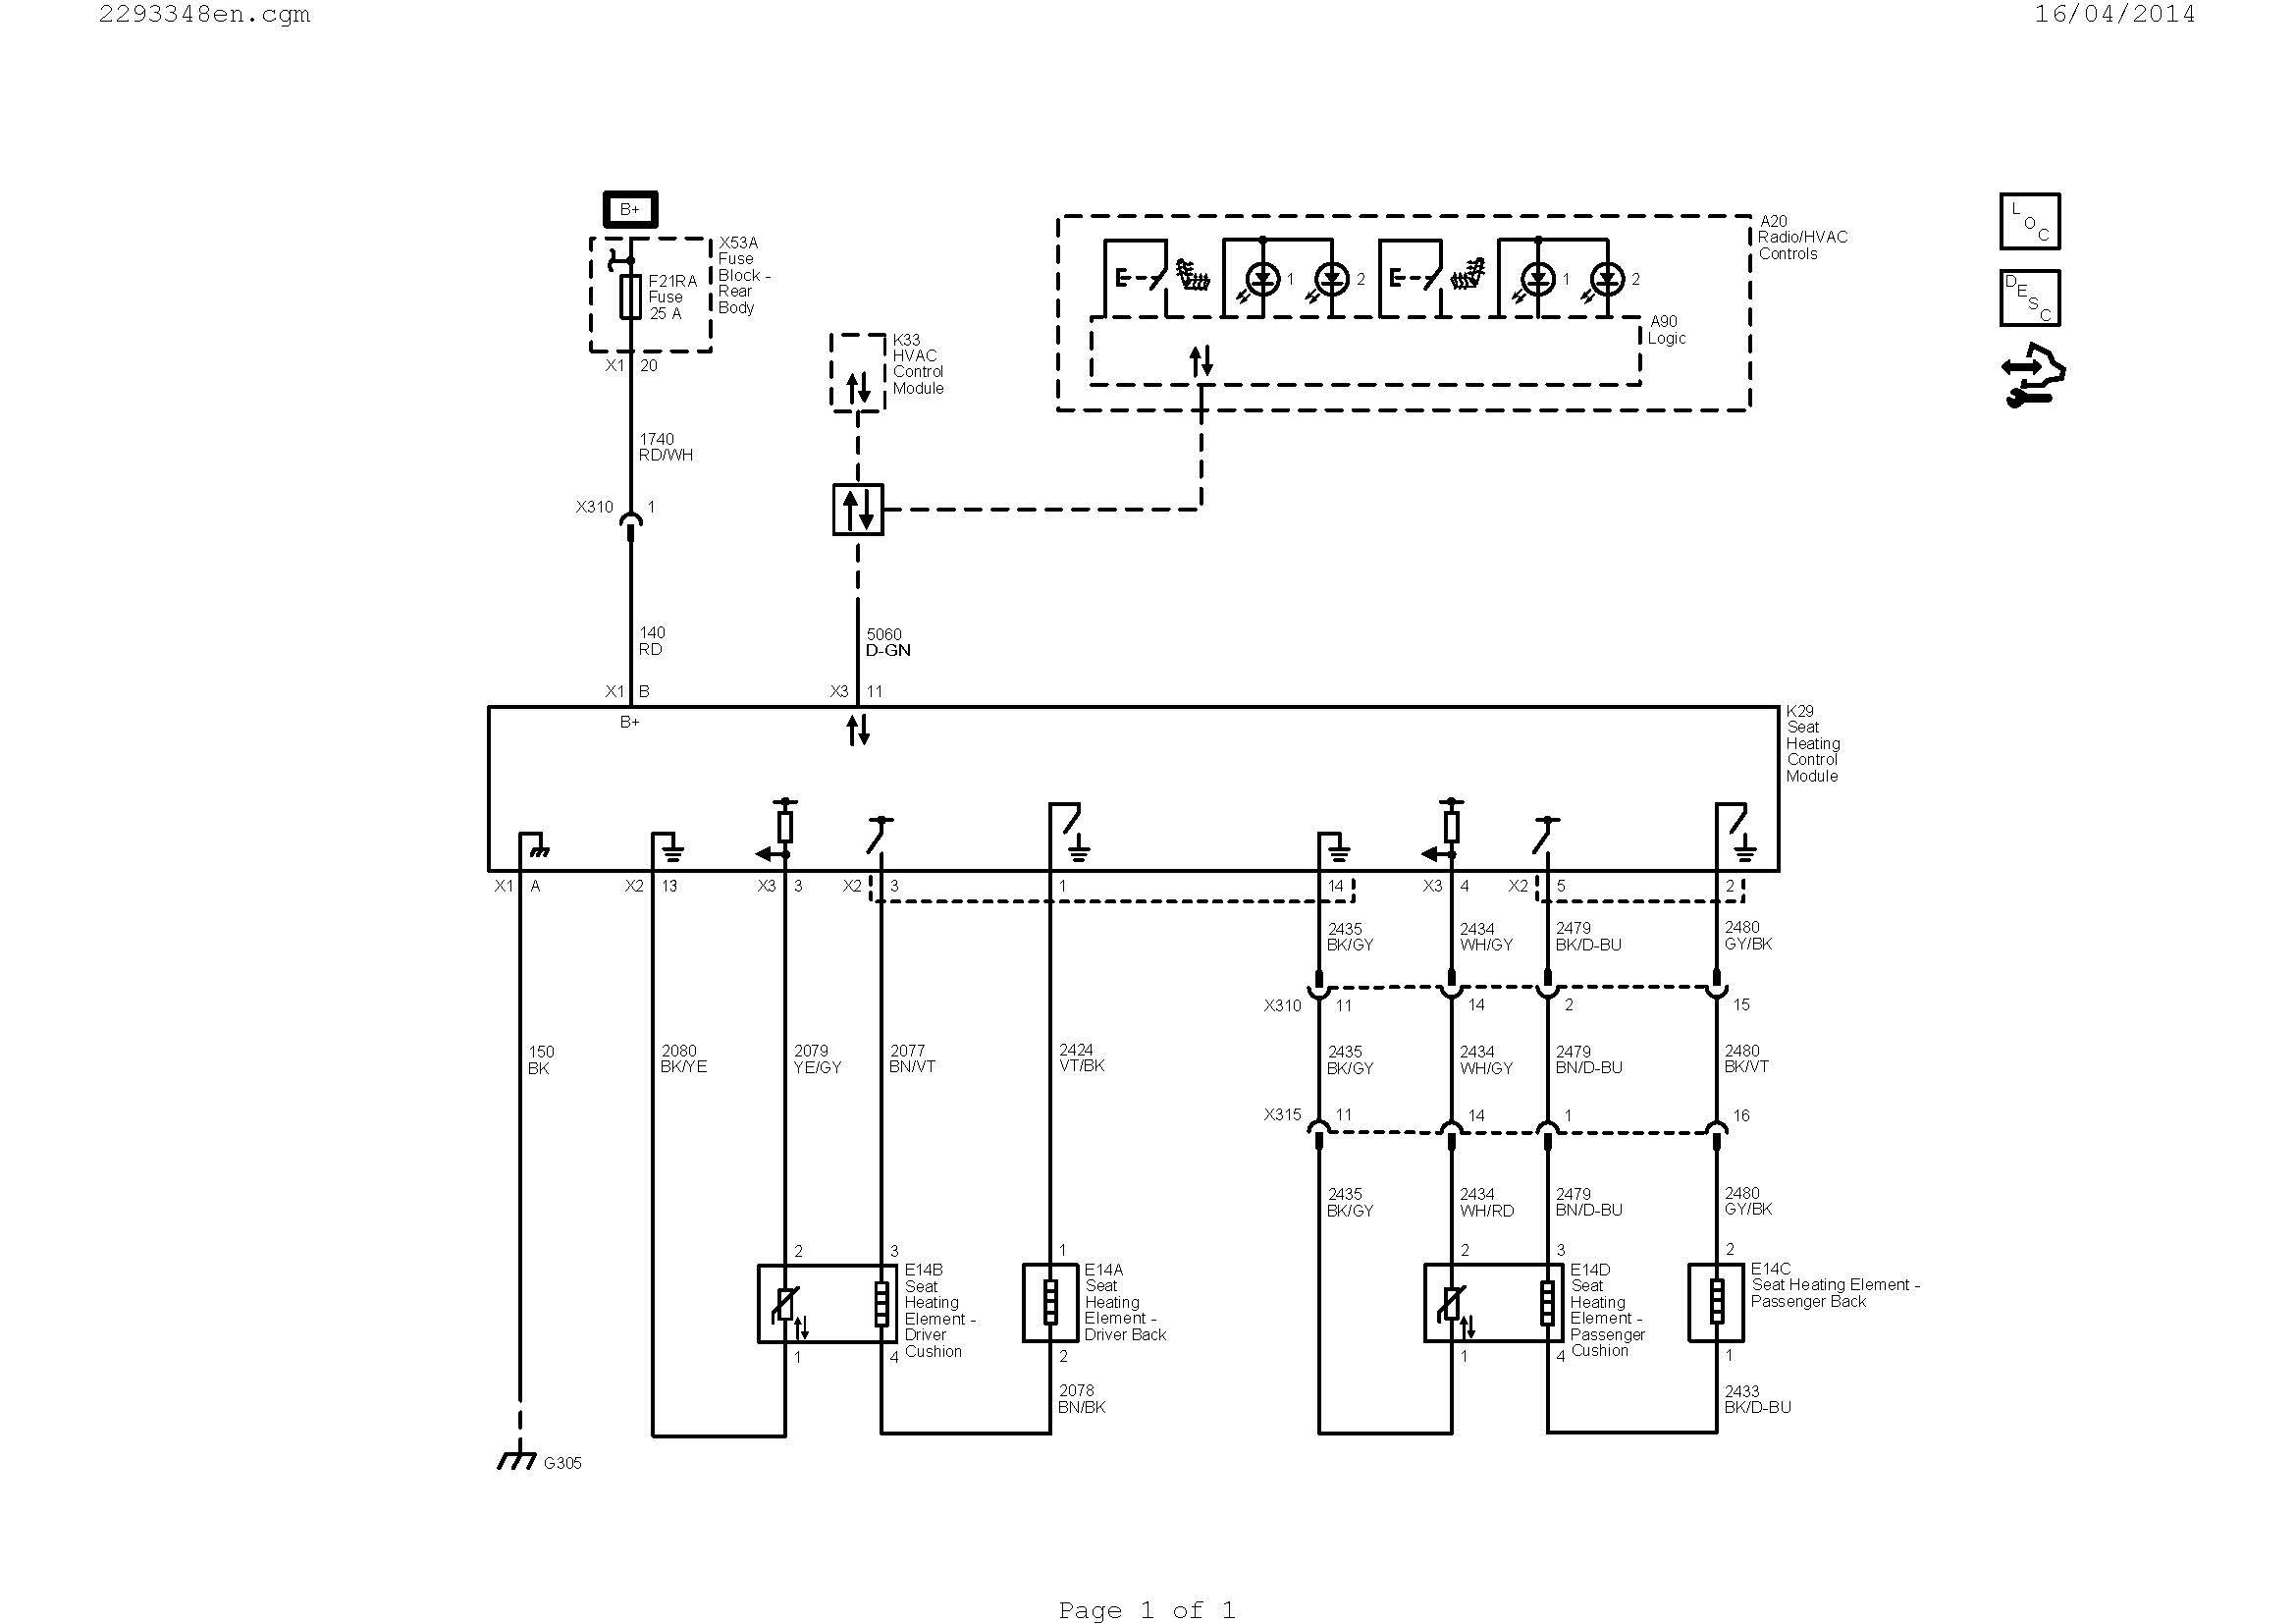 reliance csr302 wiring diagram Collection-Guitar Cable Wiring Diagram Valid Wiring Diagram Guitar Fresh Hvac Control Relay Wiring Diagram Collection 10-j